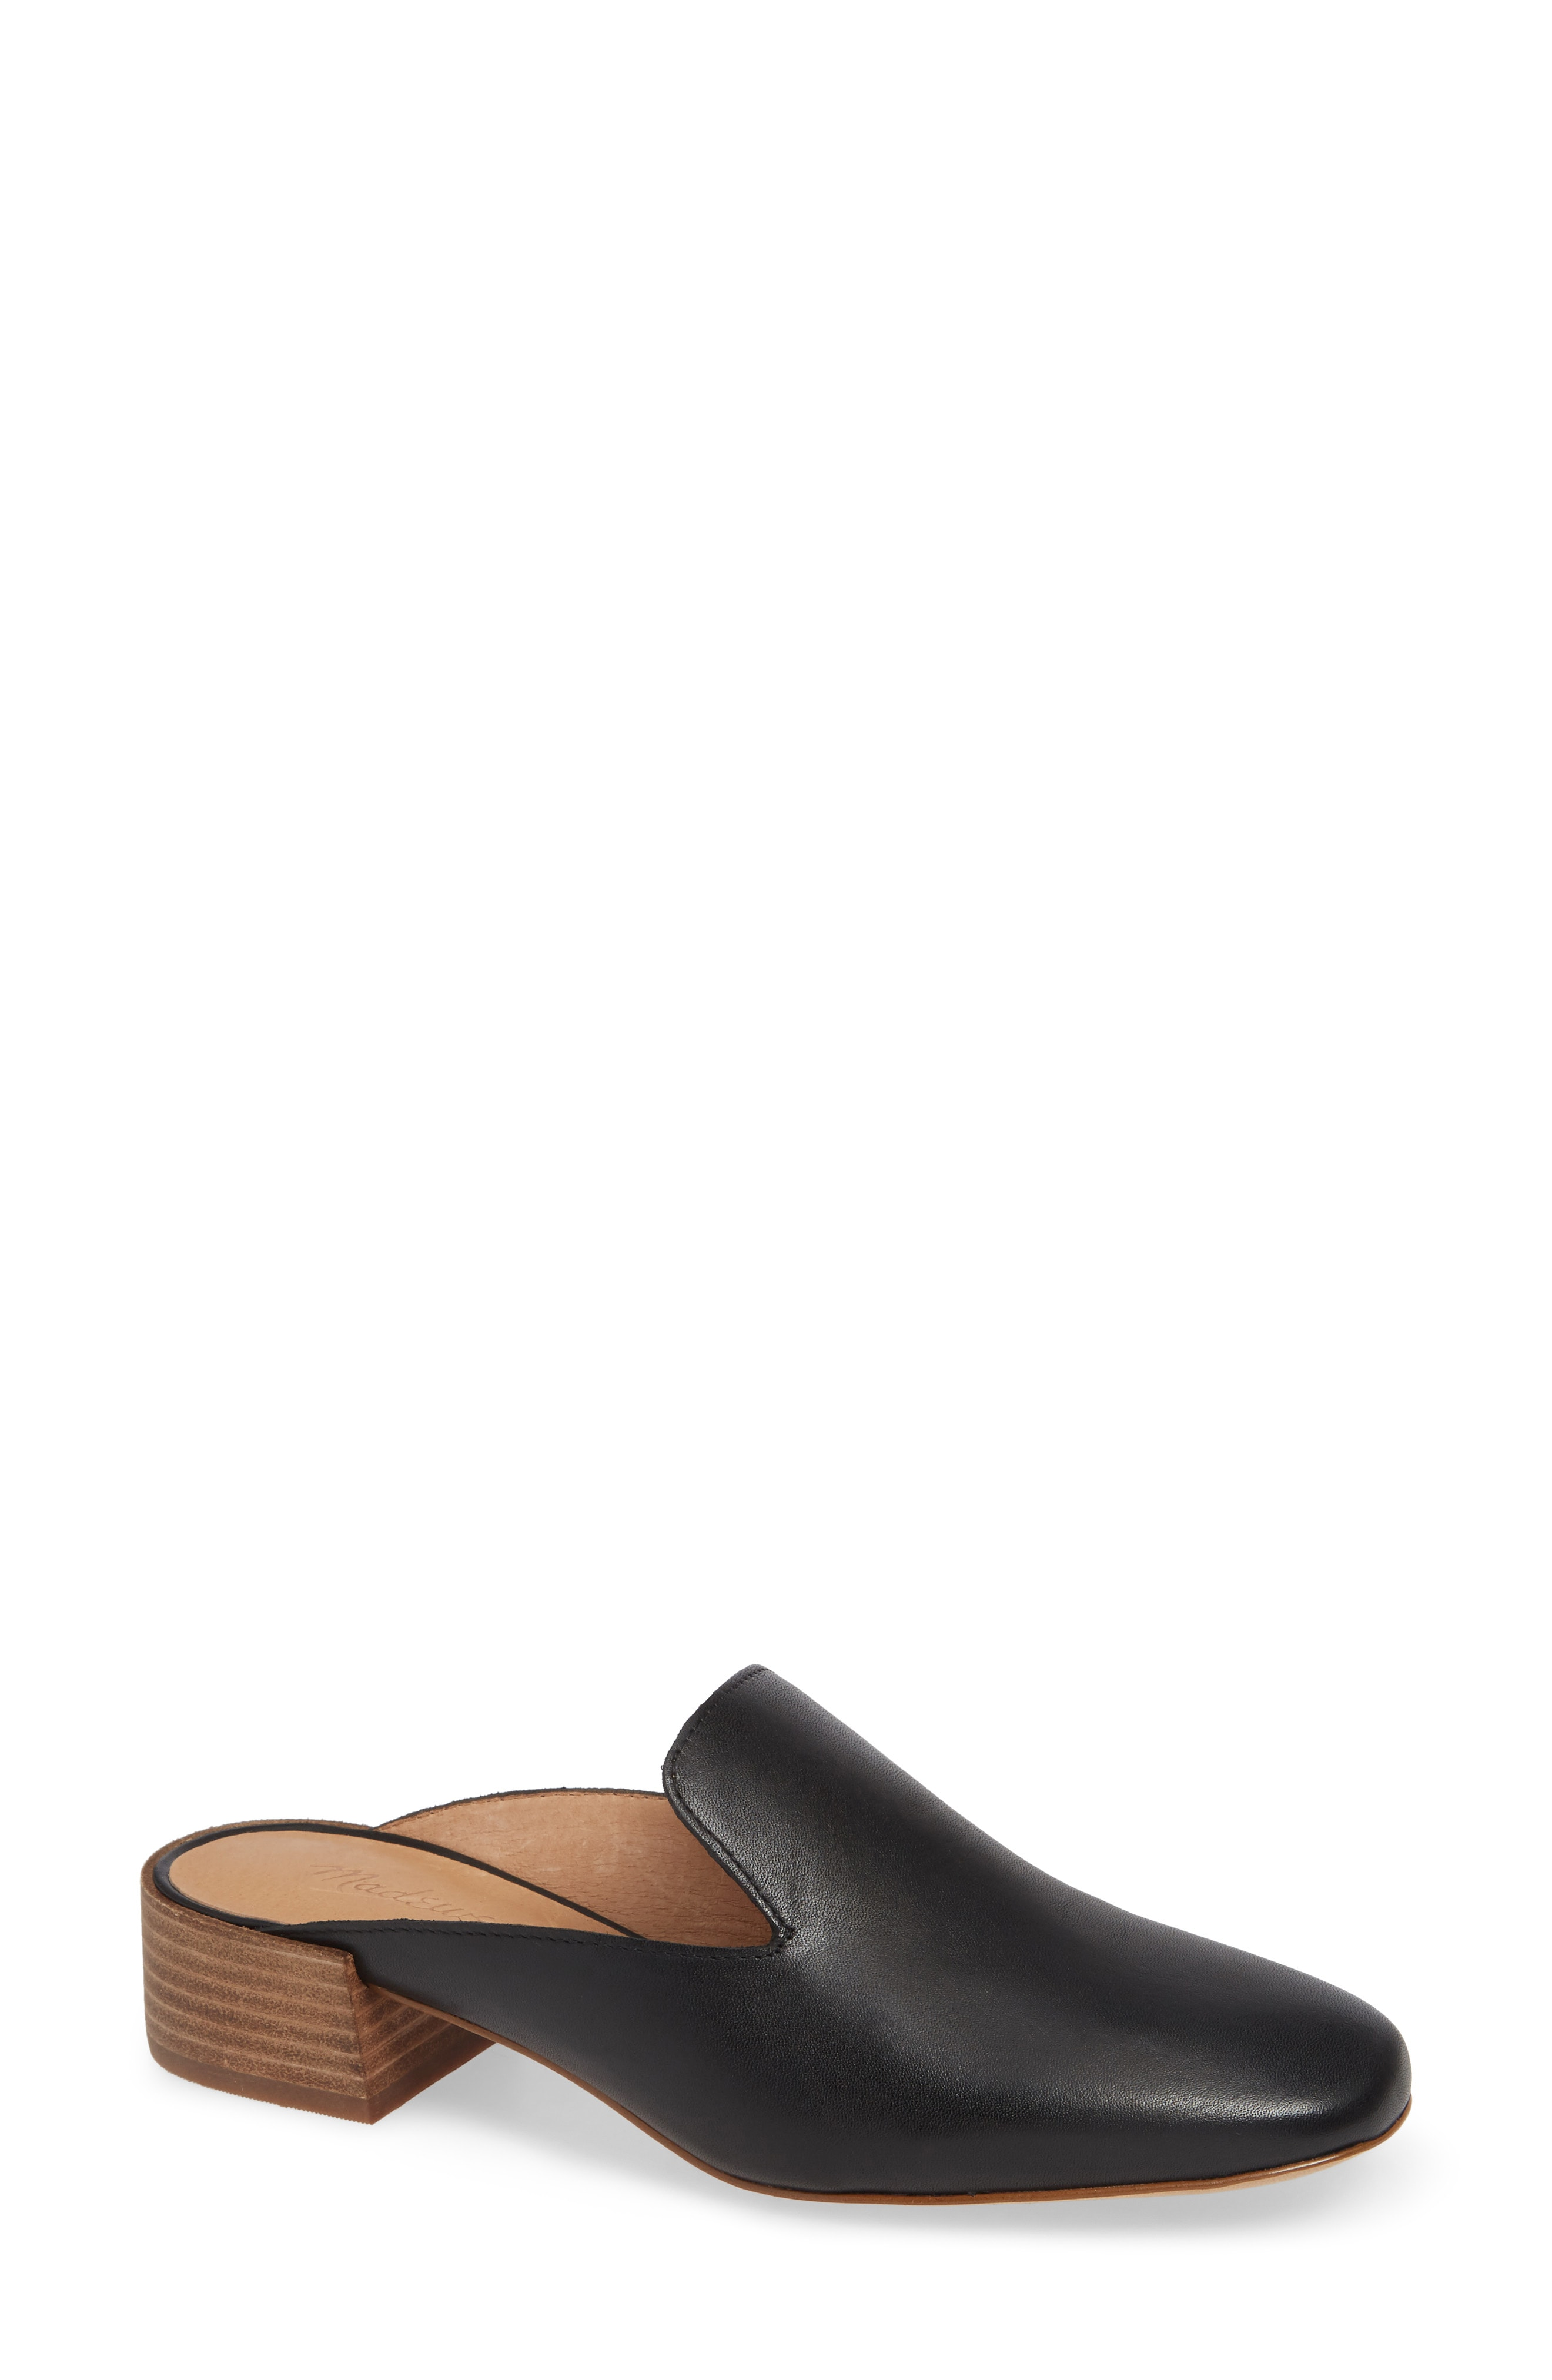 Madewell The Willa Loafer Mule (Women)